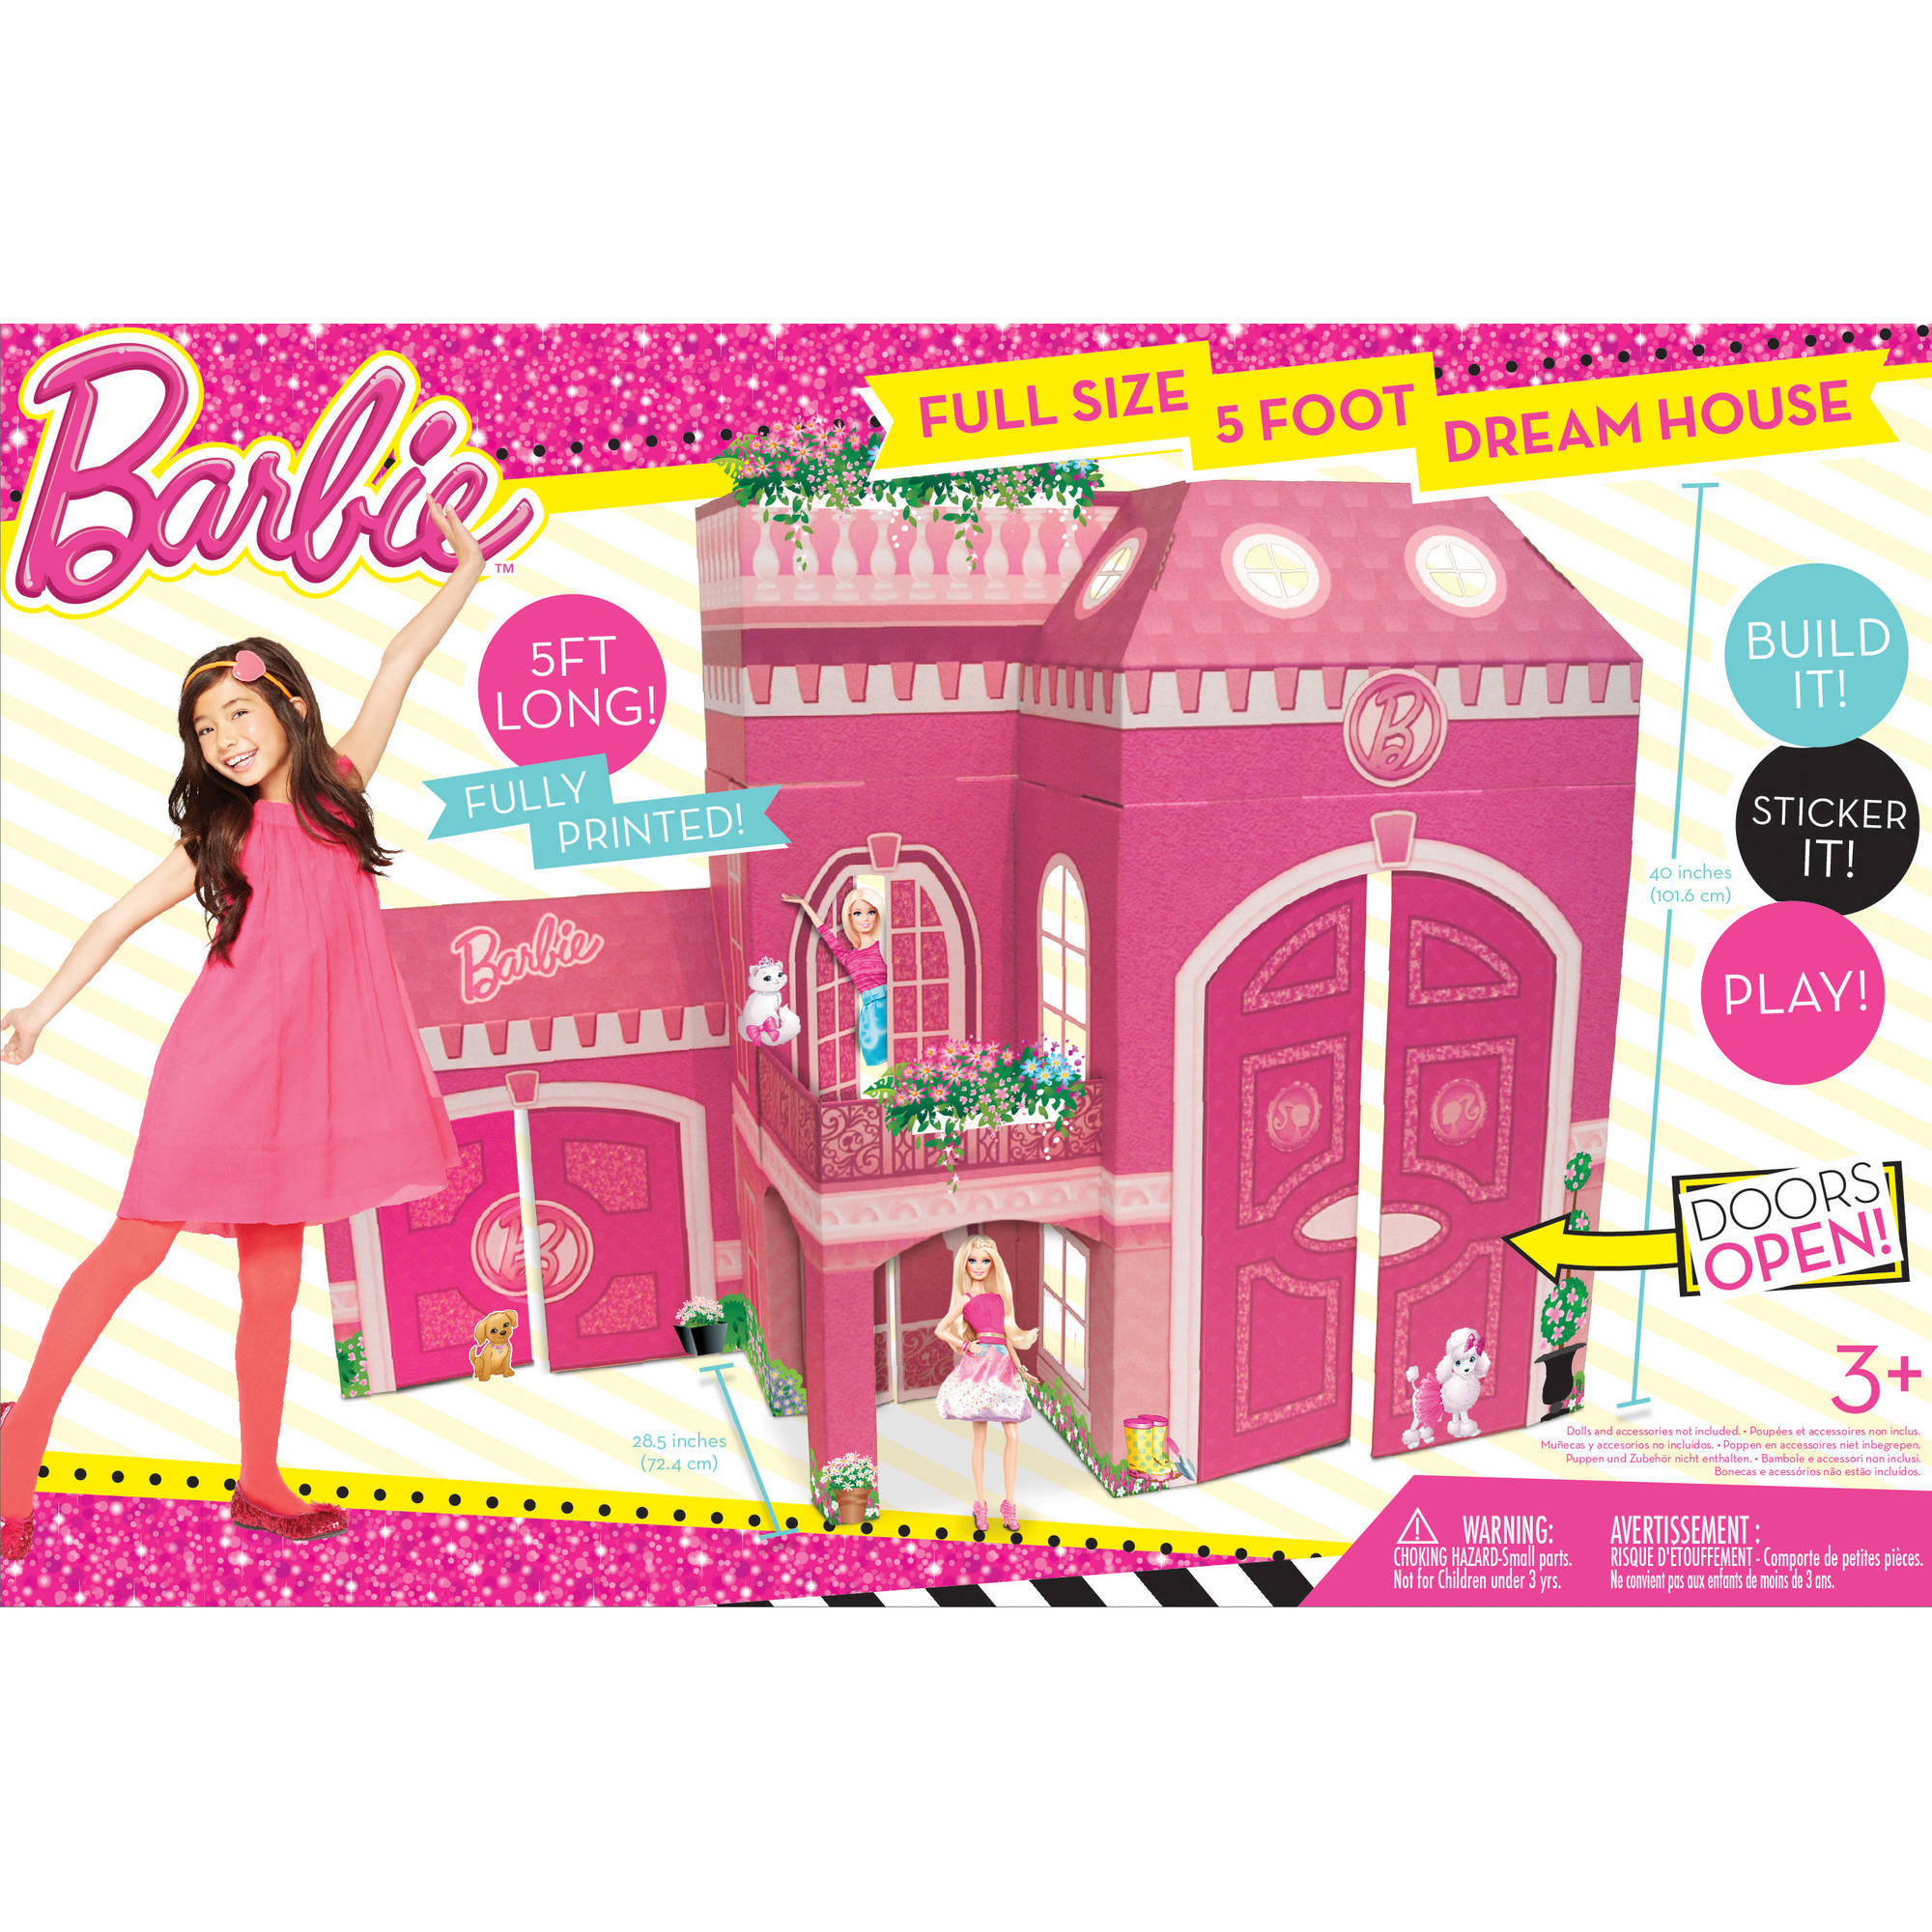 Neat Oh! Barbie Full Size Play House